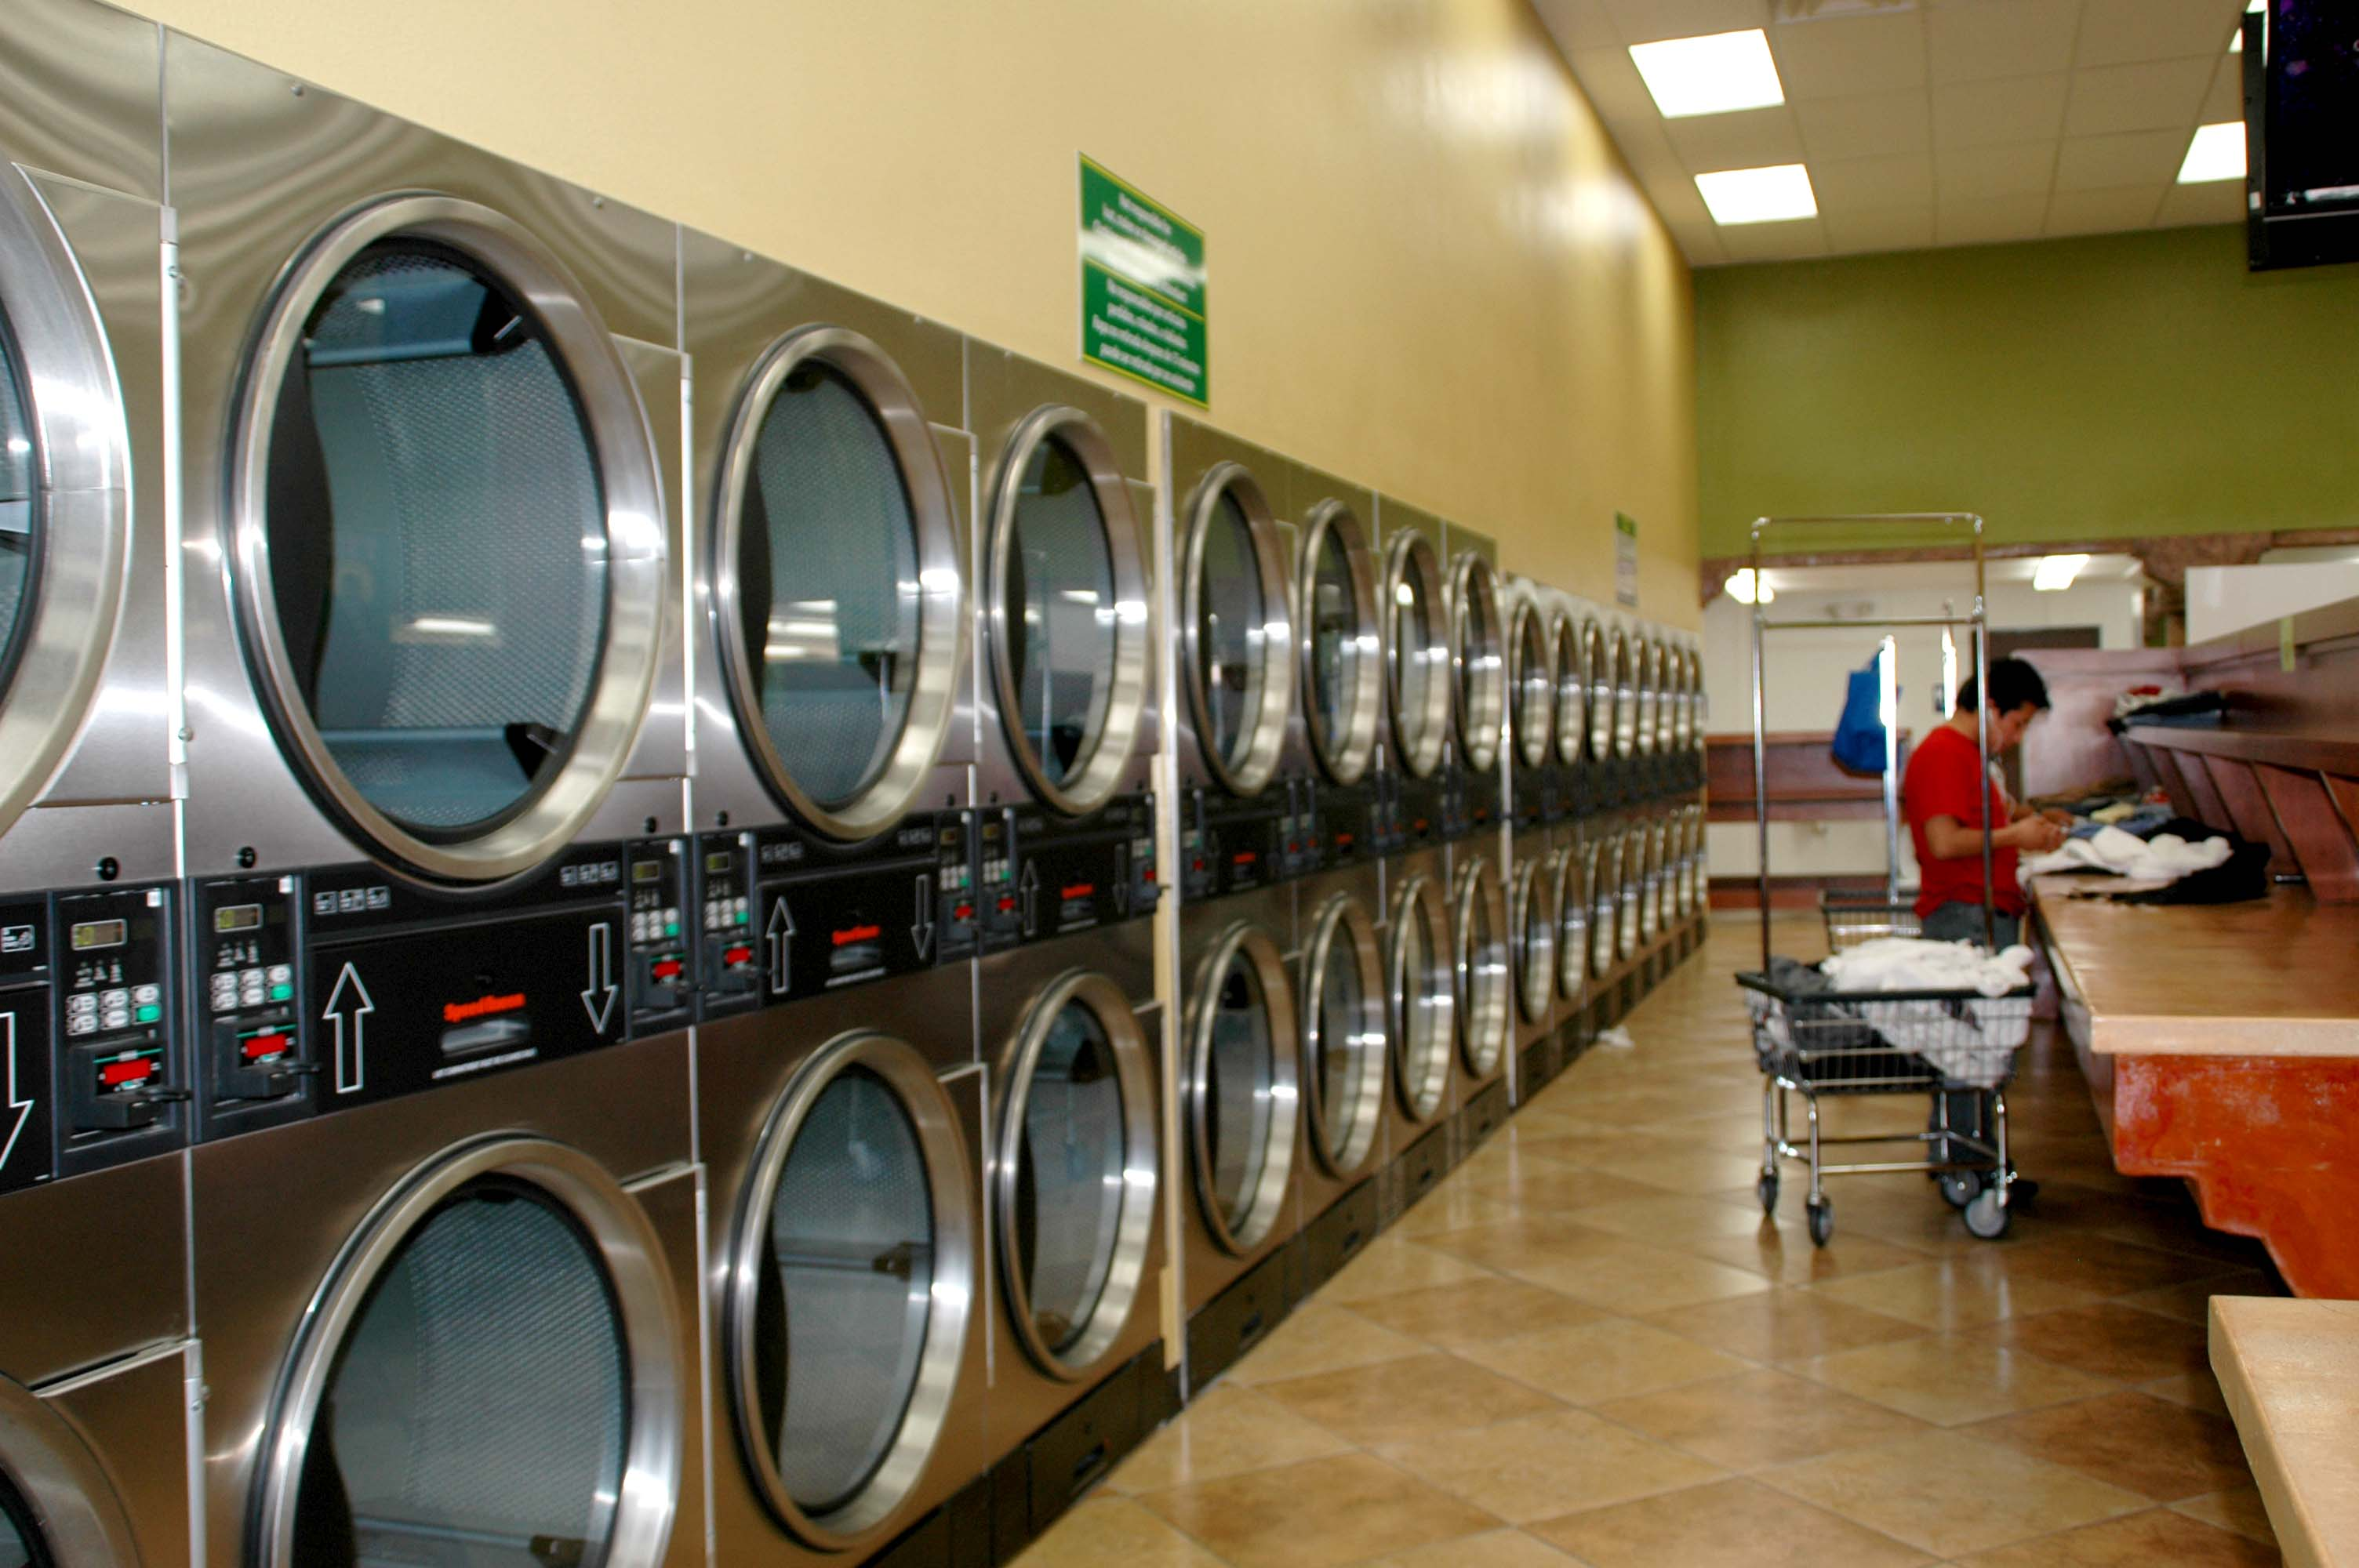 How To Design Your Own Home Plans Build A New Laundromat Coin Laundry Design Services